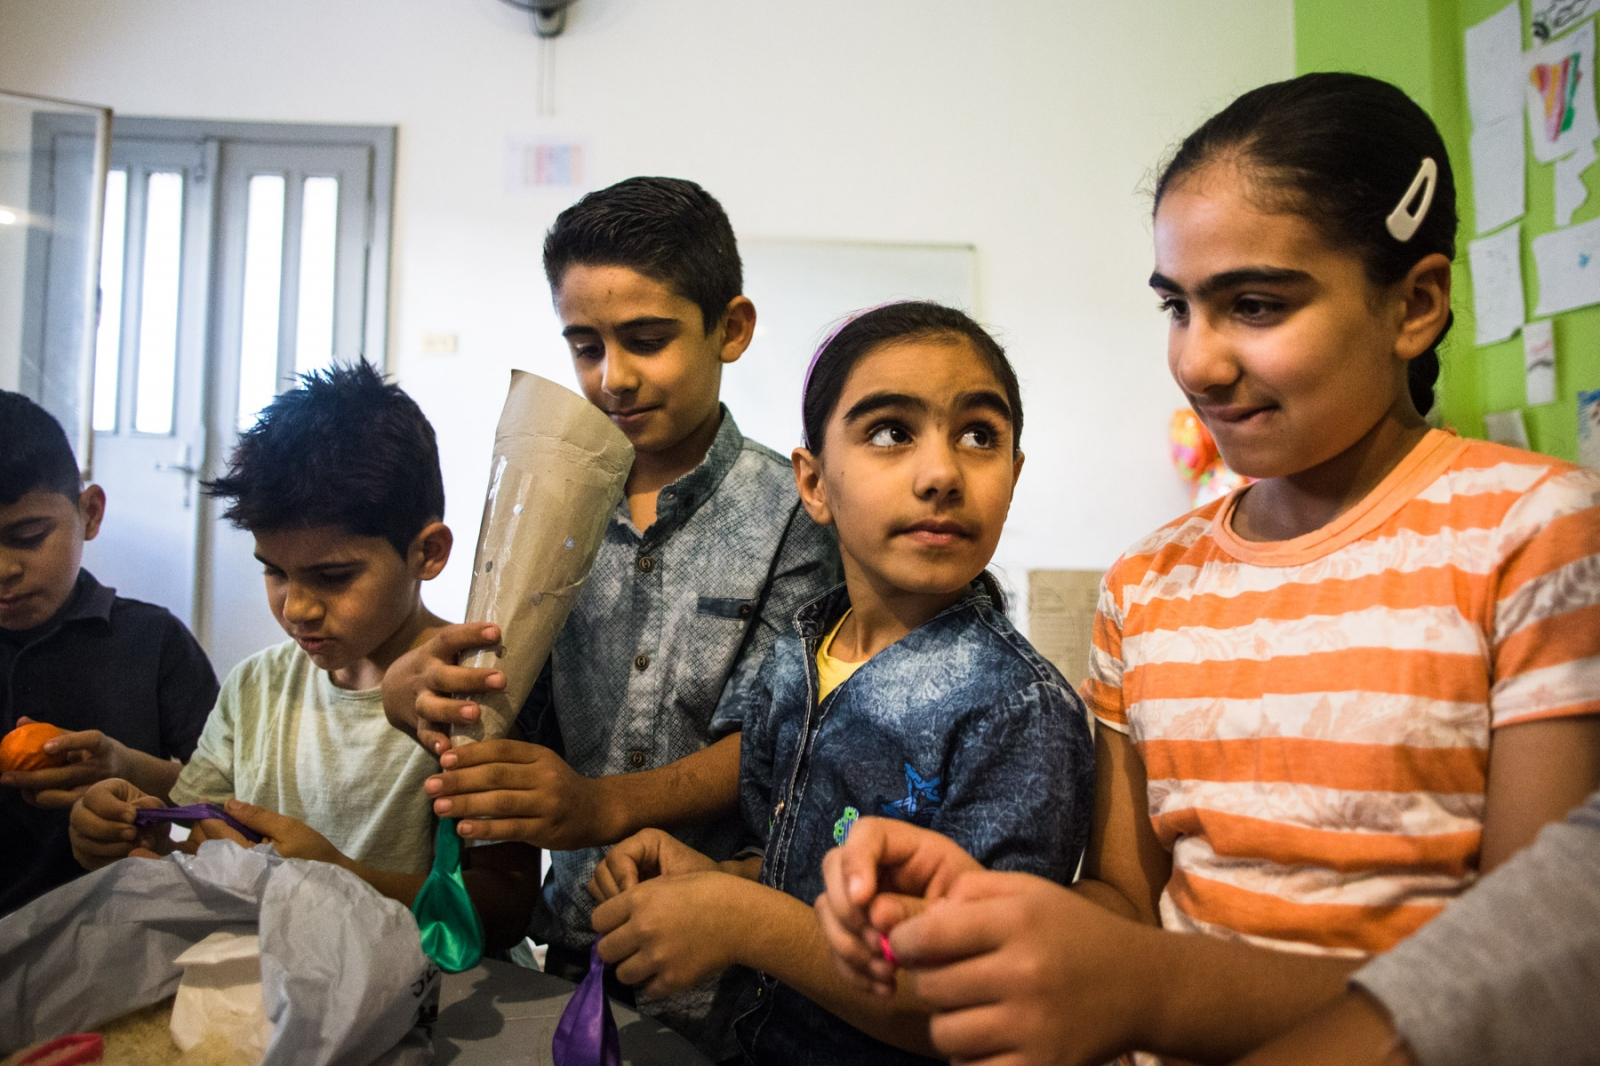 Iraqi and Syrian children work on an art project during an after school program. Collateral Repair Project, a local NGO in East Amman, provides classes, programs for children, and donations of food and other necessities to help Iraqi and Syrian refugees living in the neighborhood.